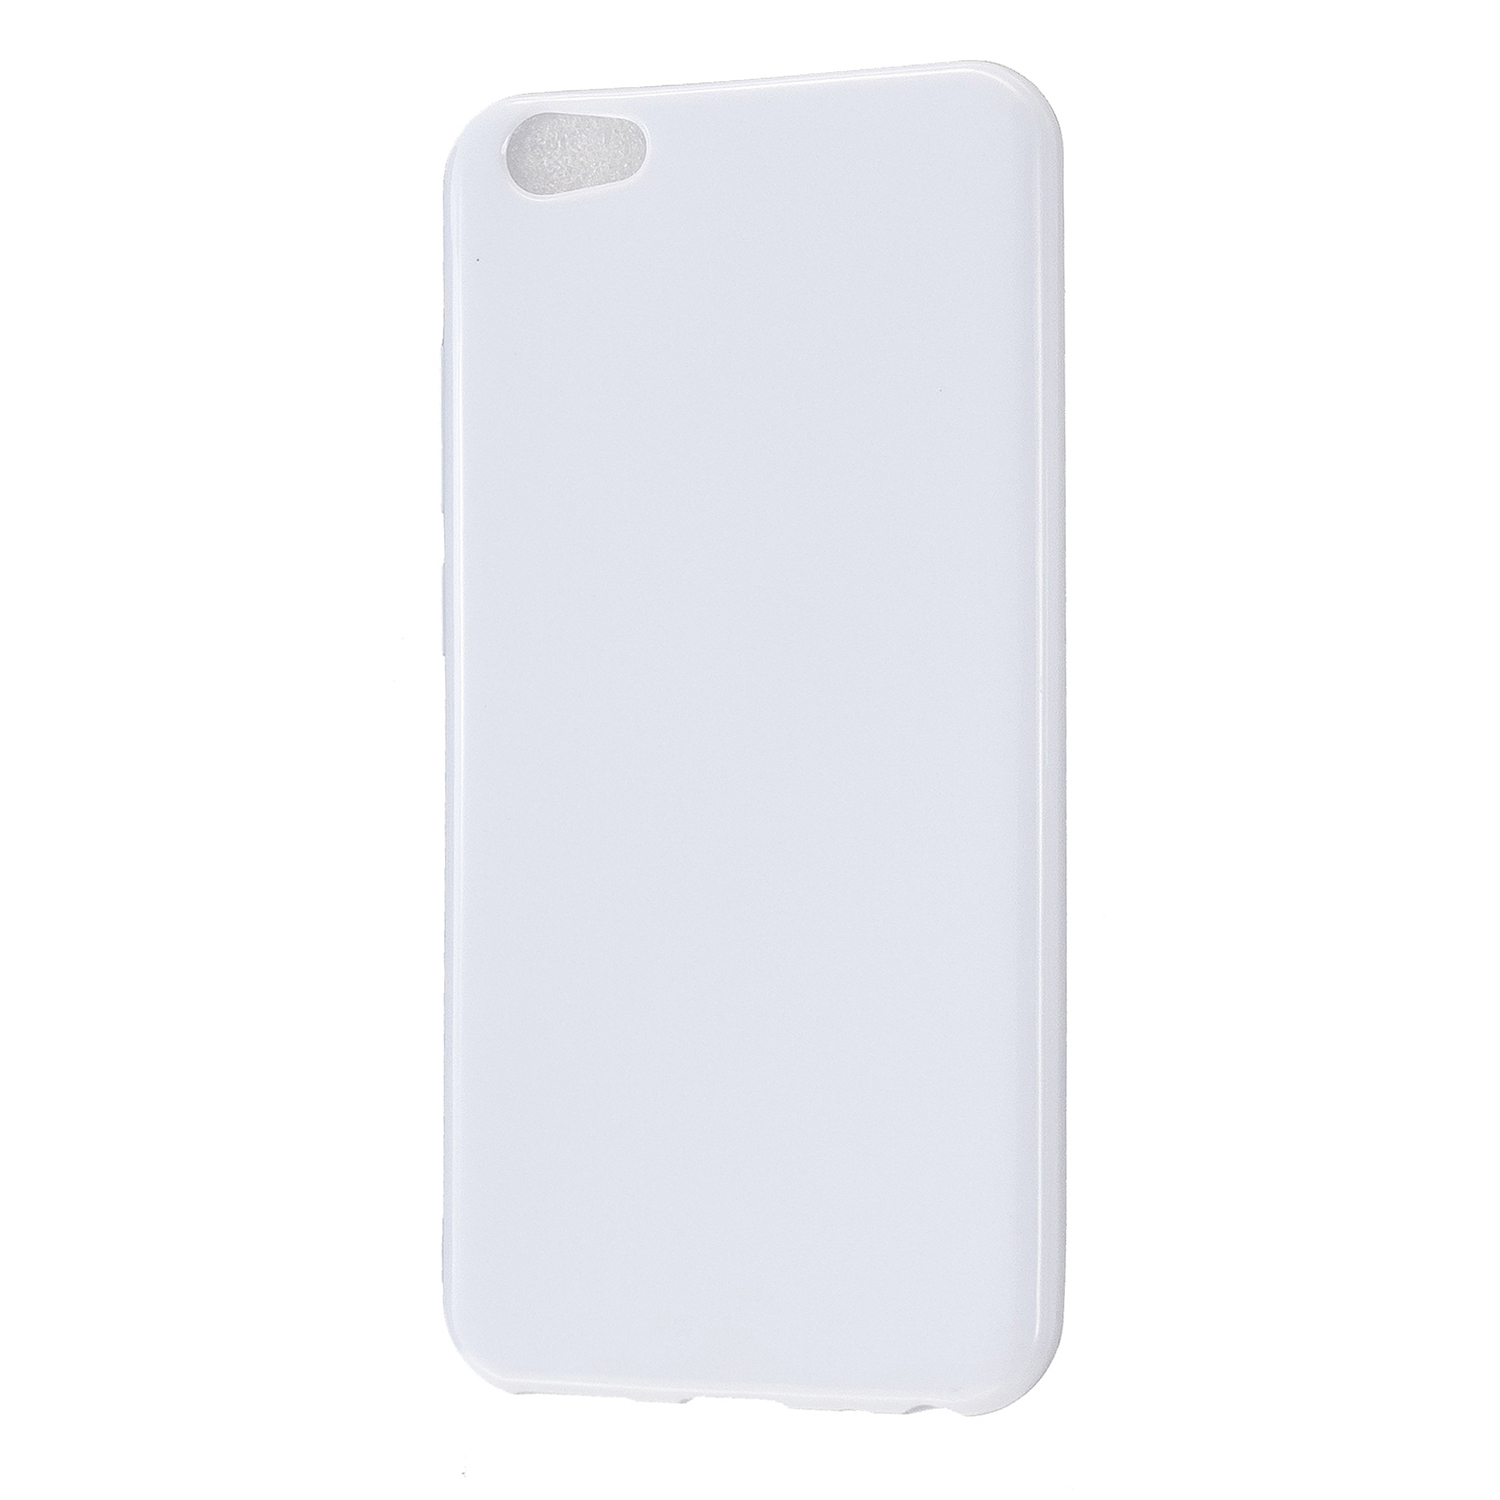 For VIVO Y67/Y71 Cellphone Cover Glossy TPU Phone Case Anti-Dust Stain-proof Easy Install Screen Protector Milk white